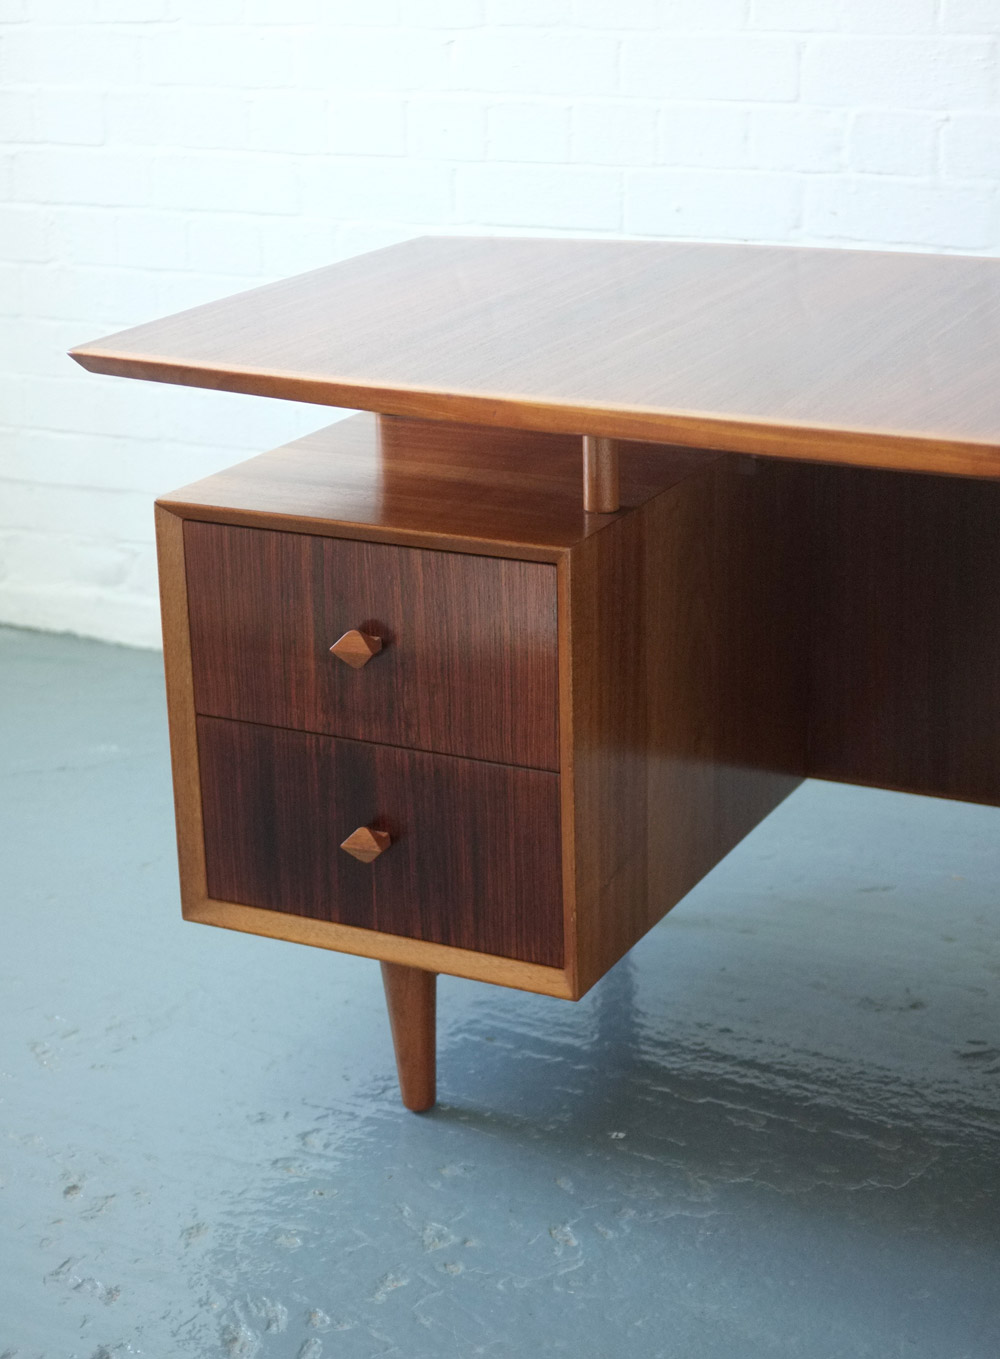 1950s rosewood desk by Heals